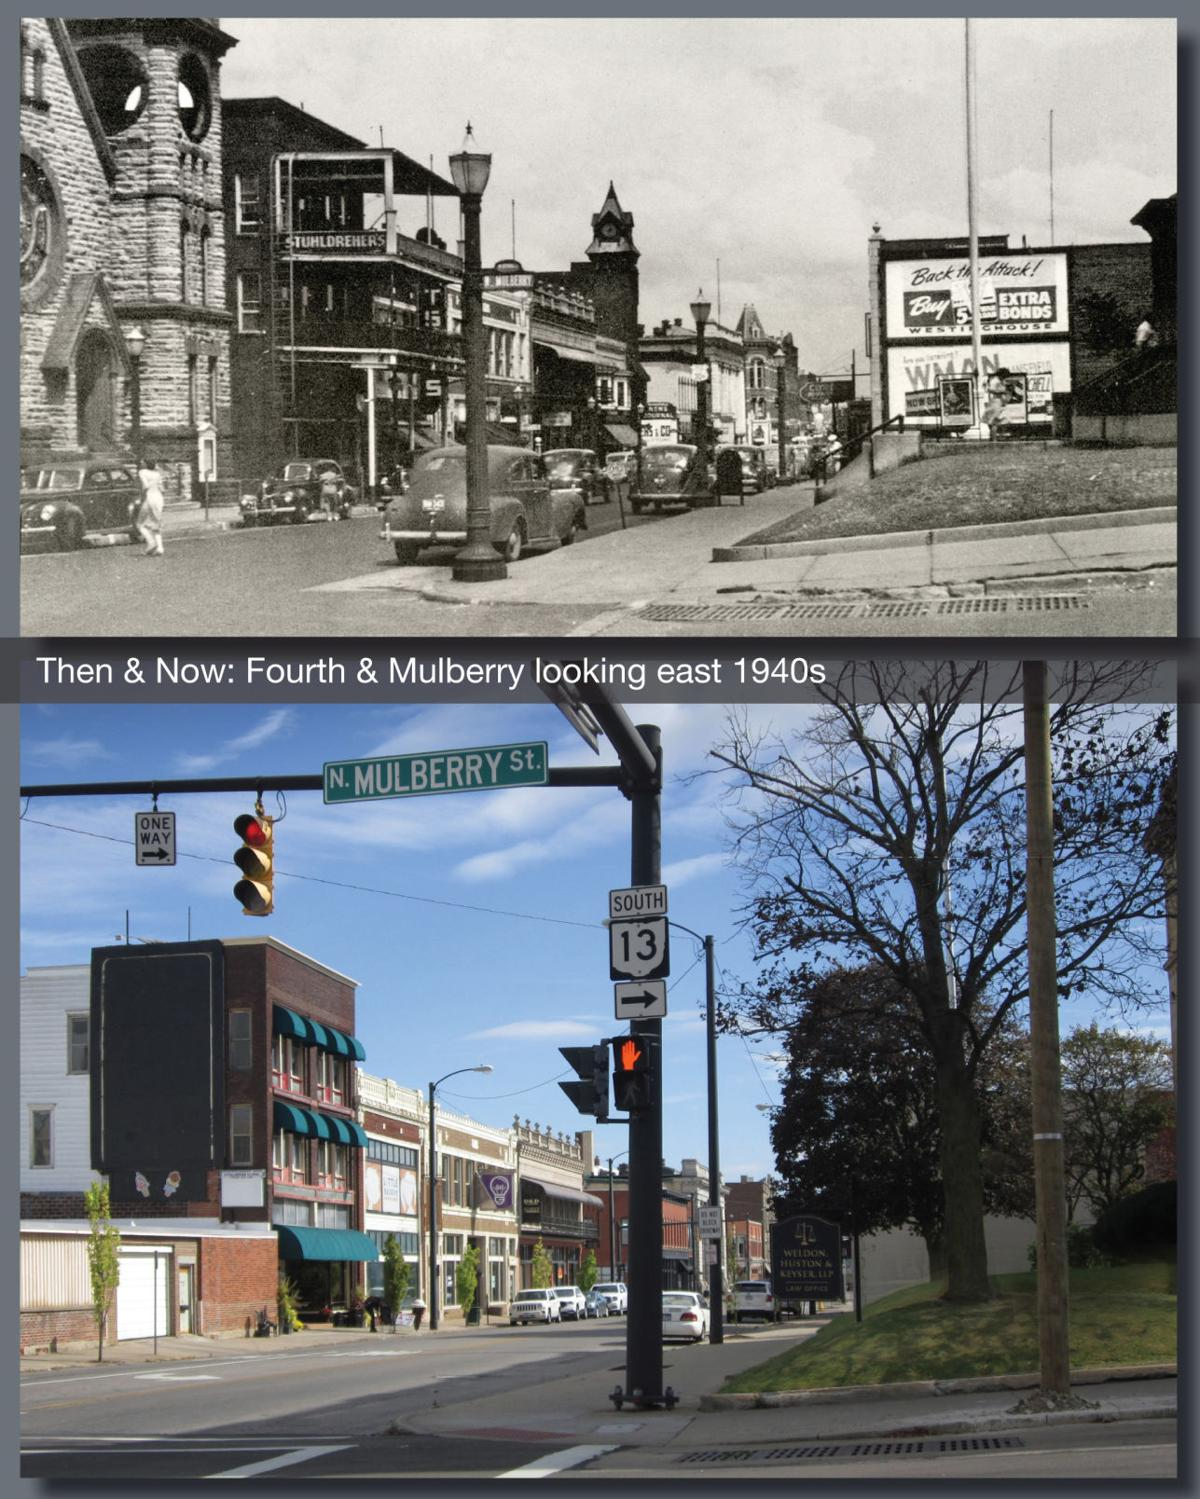 Then & Now: Fourth & Mulberry 1940s